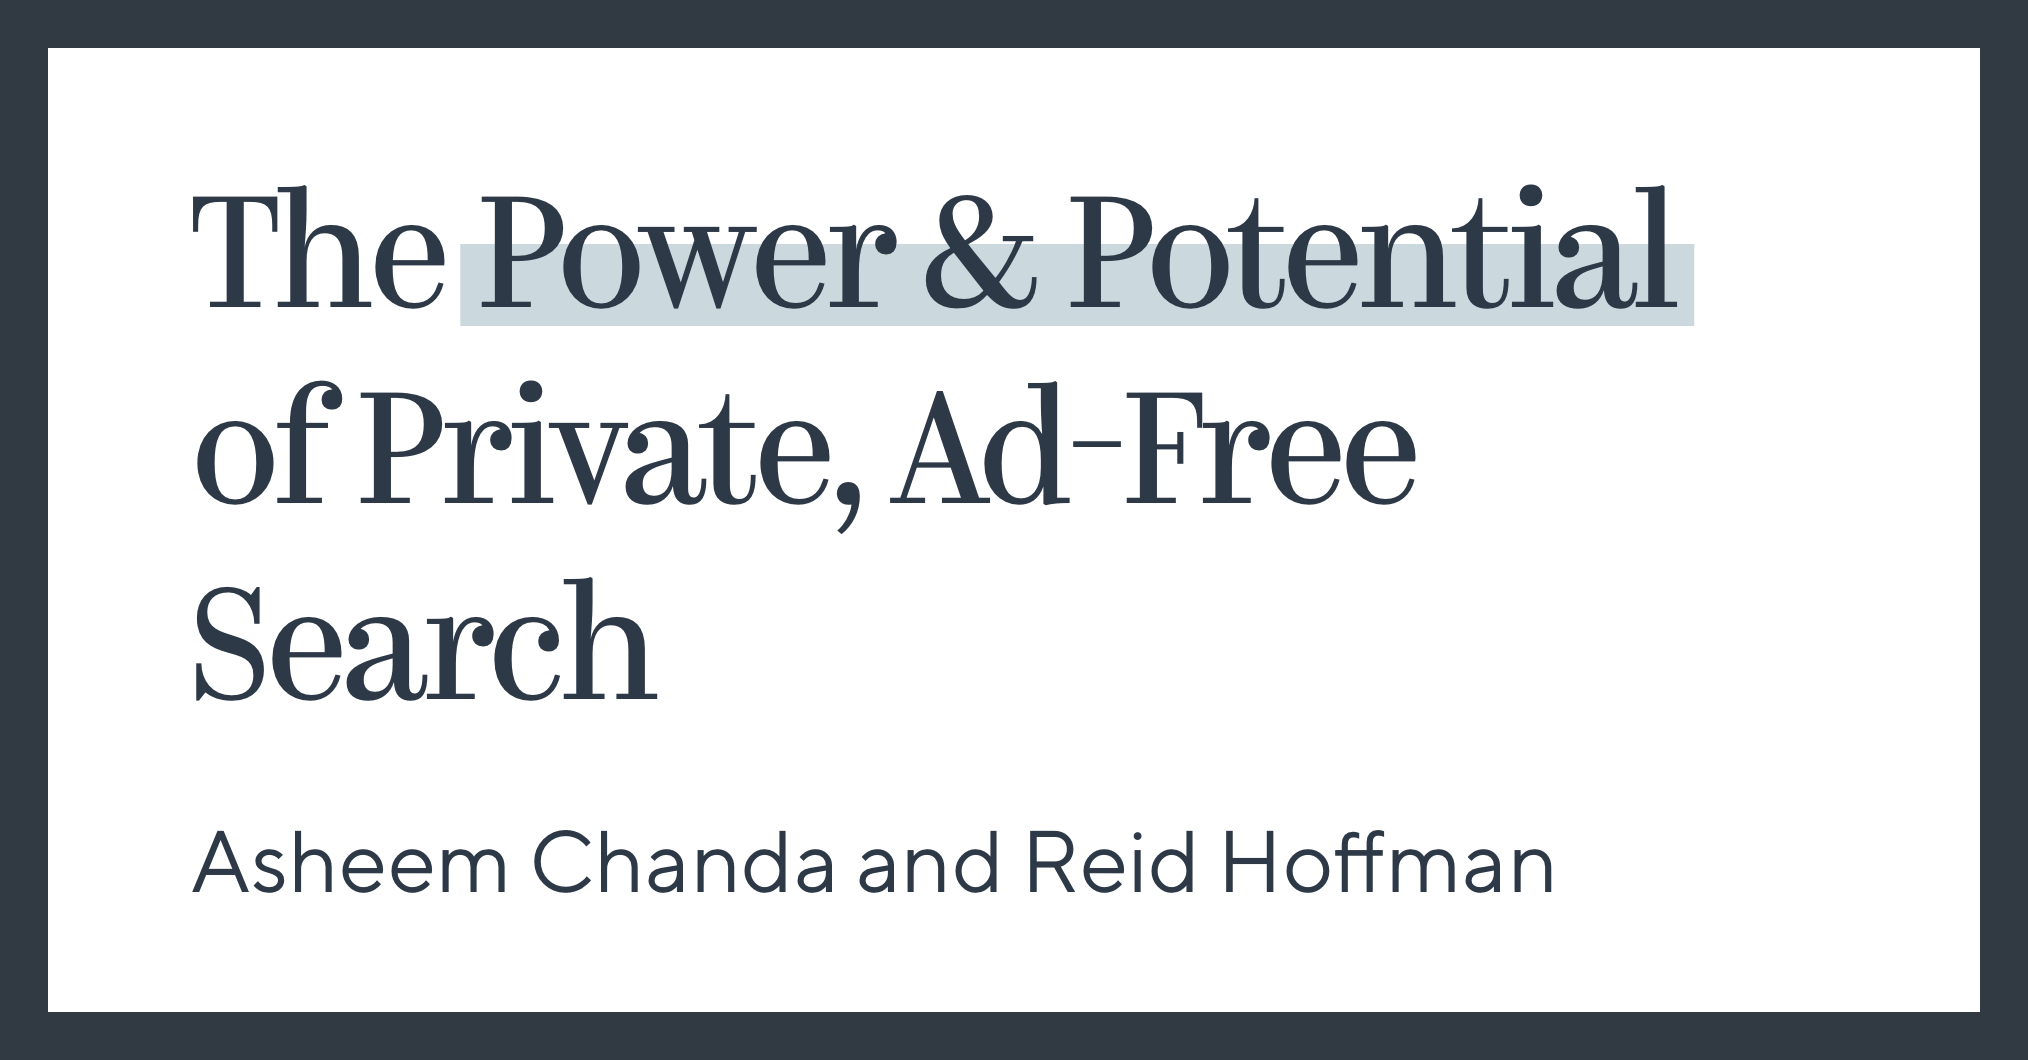 The Power & Potential of Private, Ad-Free Search